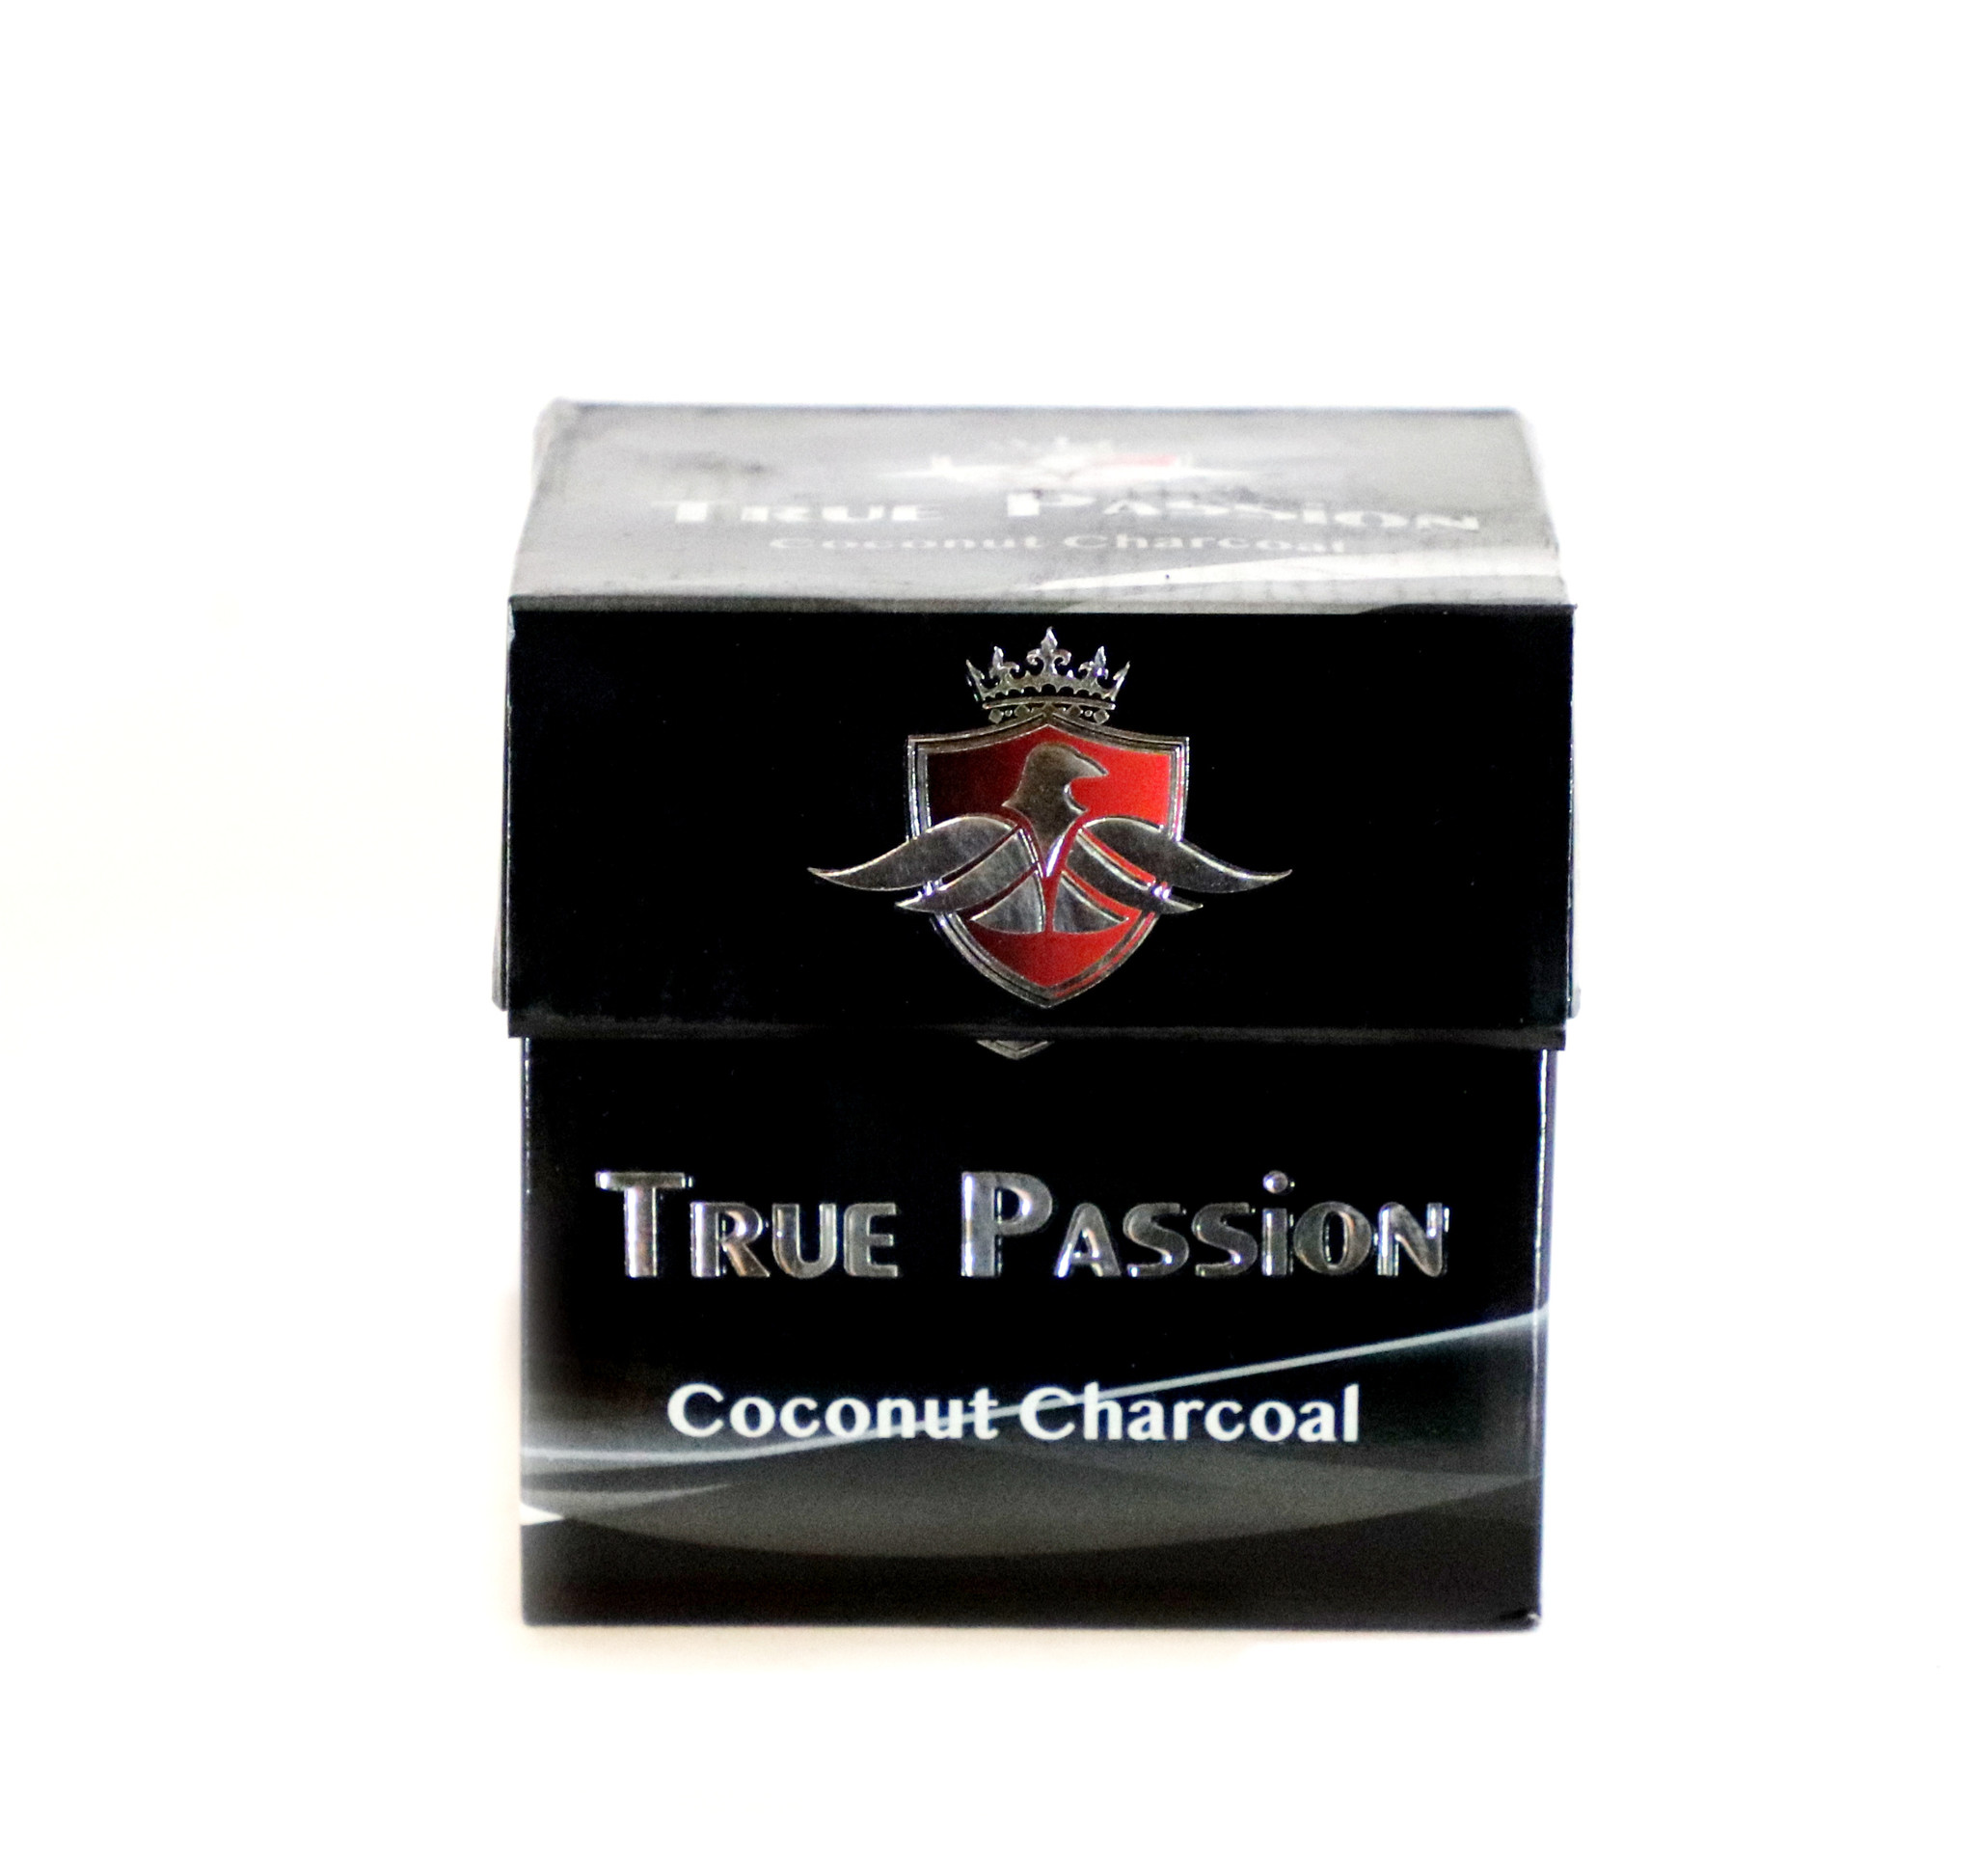 True Passion True Passion Kohle - 1Kg Box